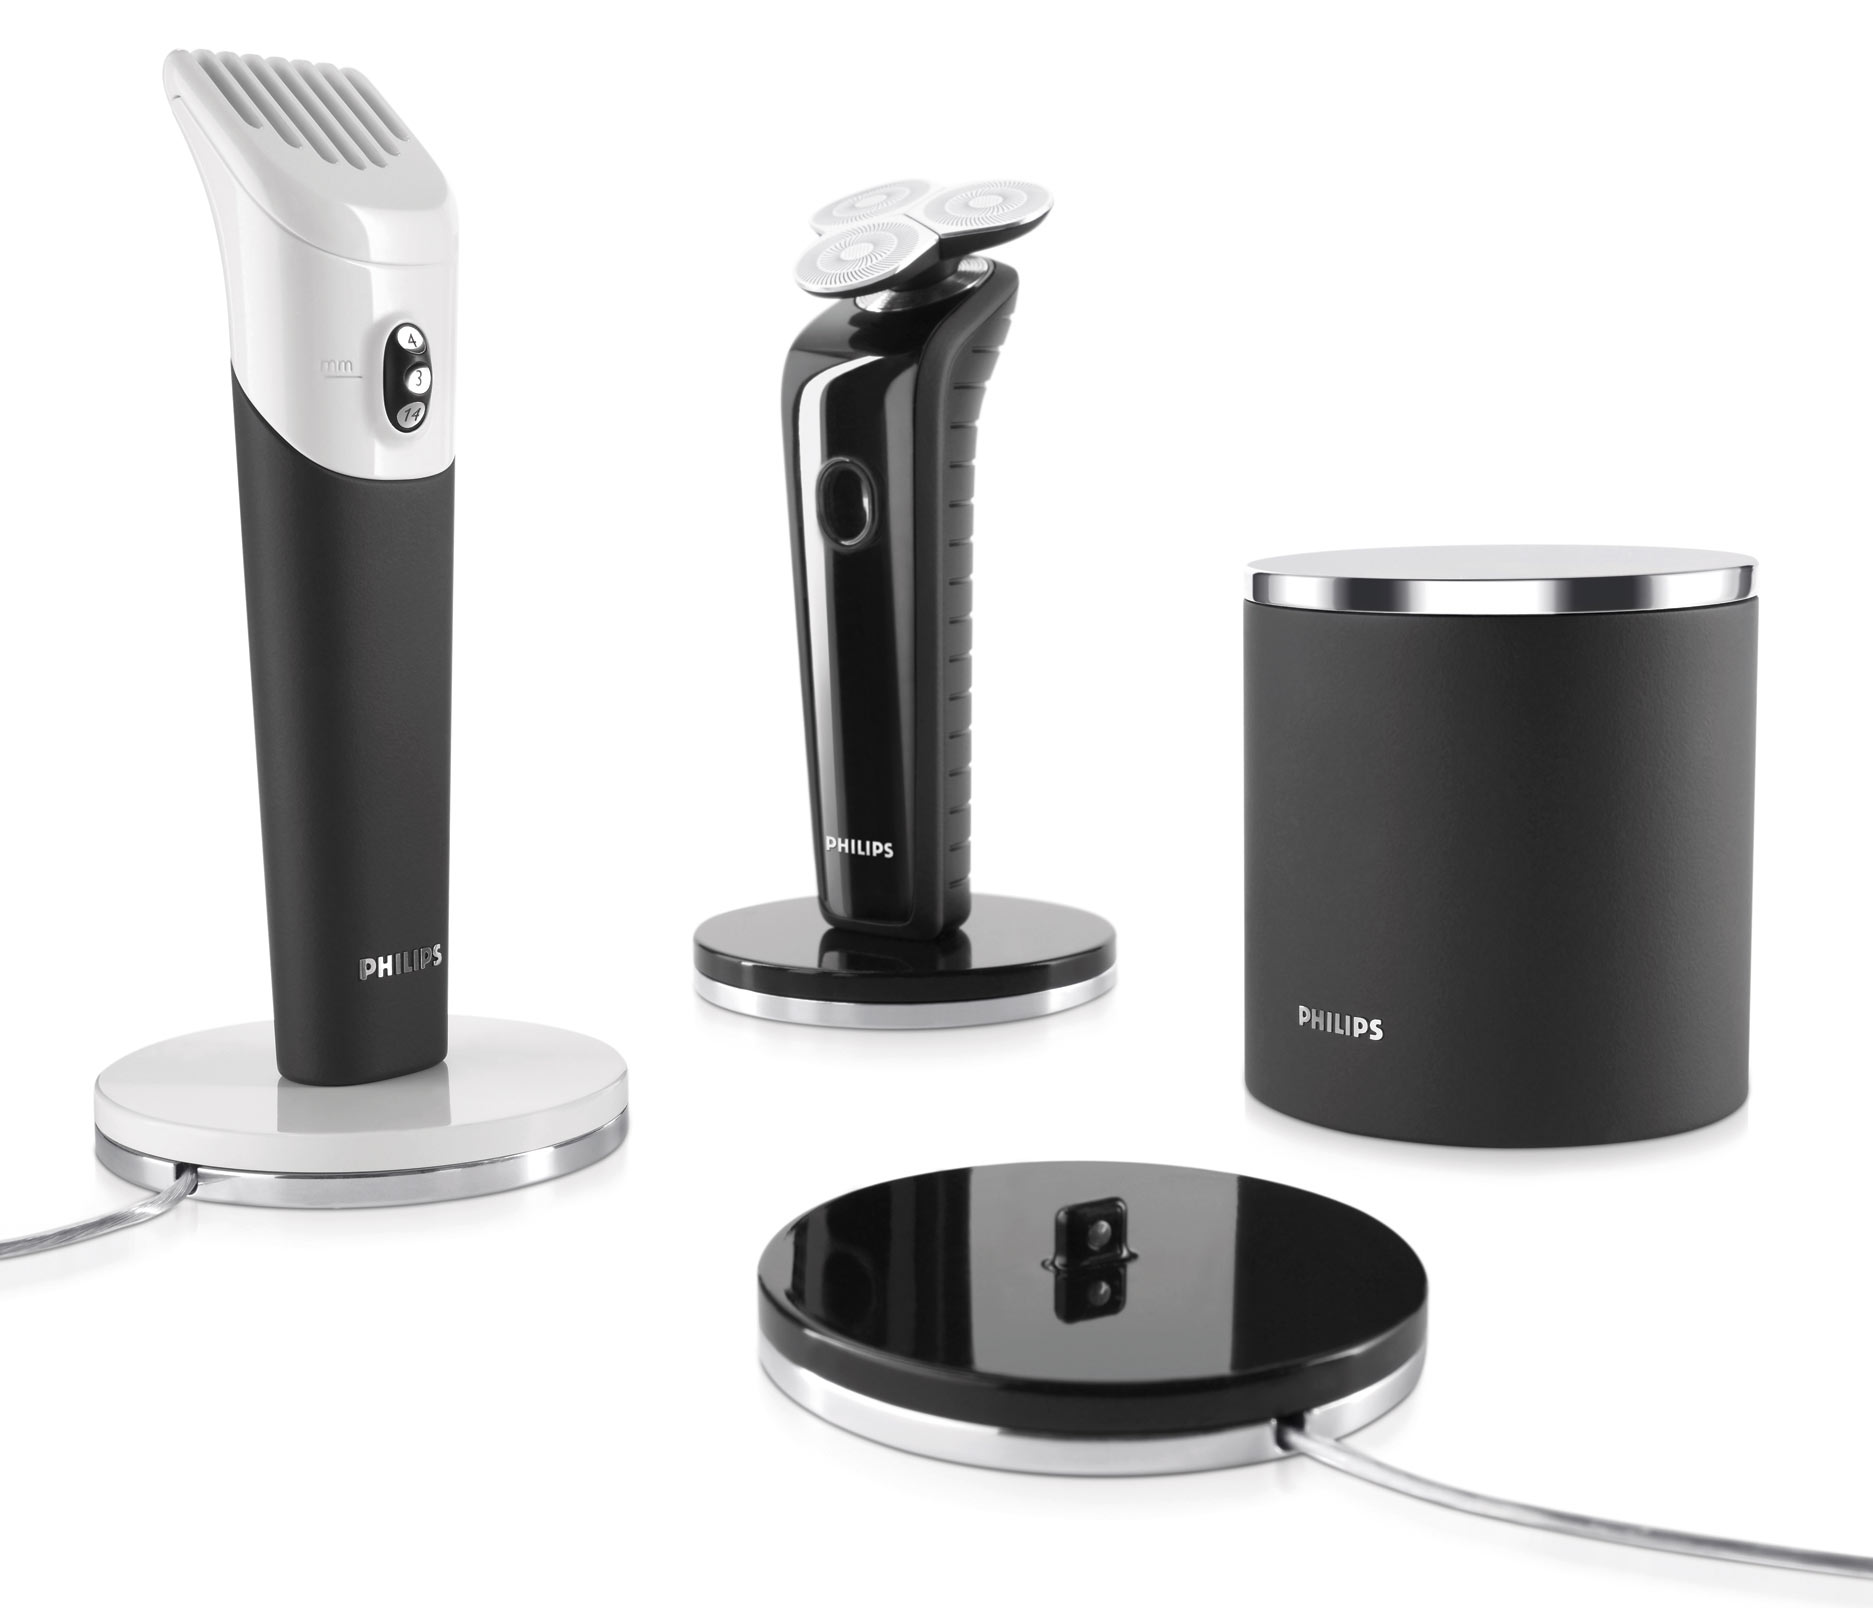 Shaver for Philips